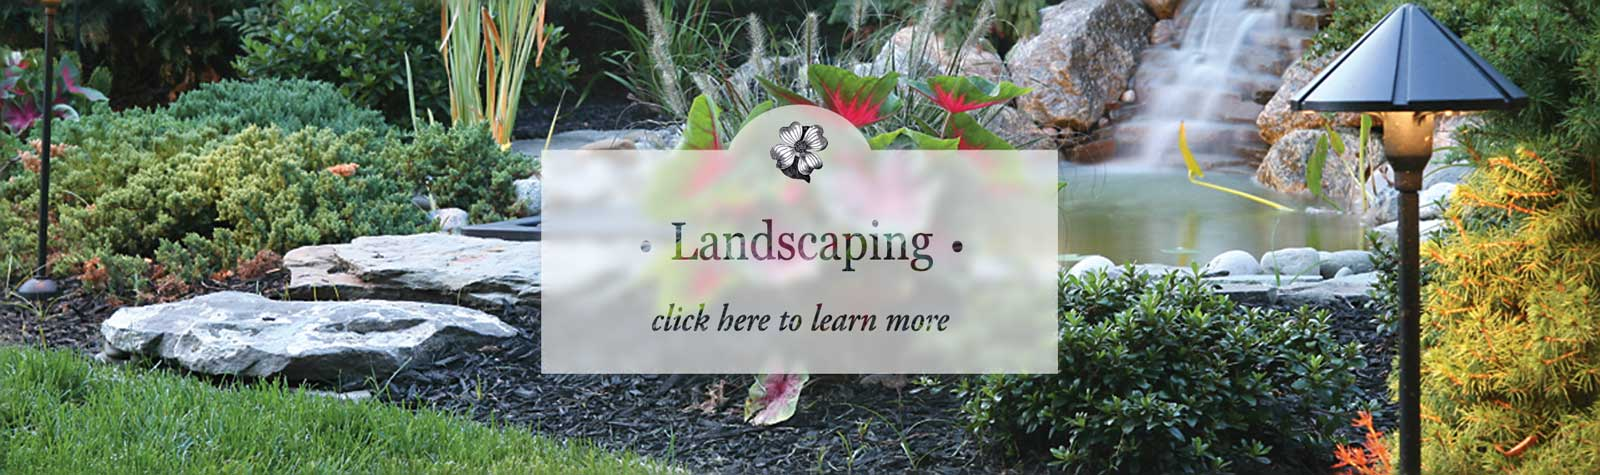 1landscaping